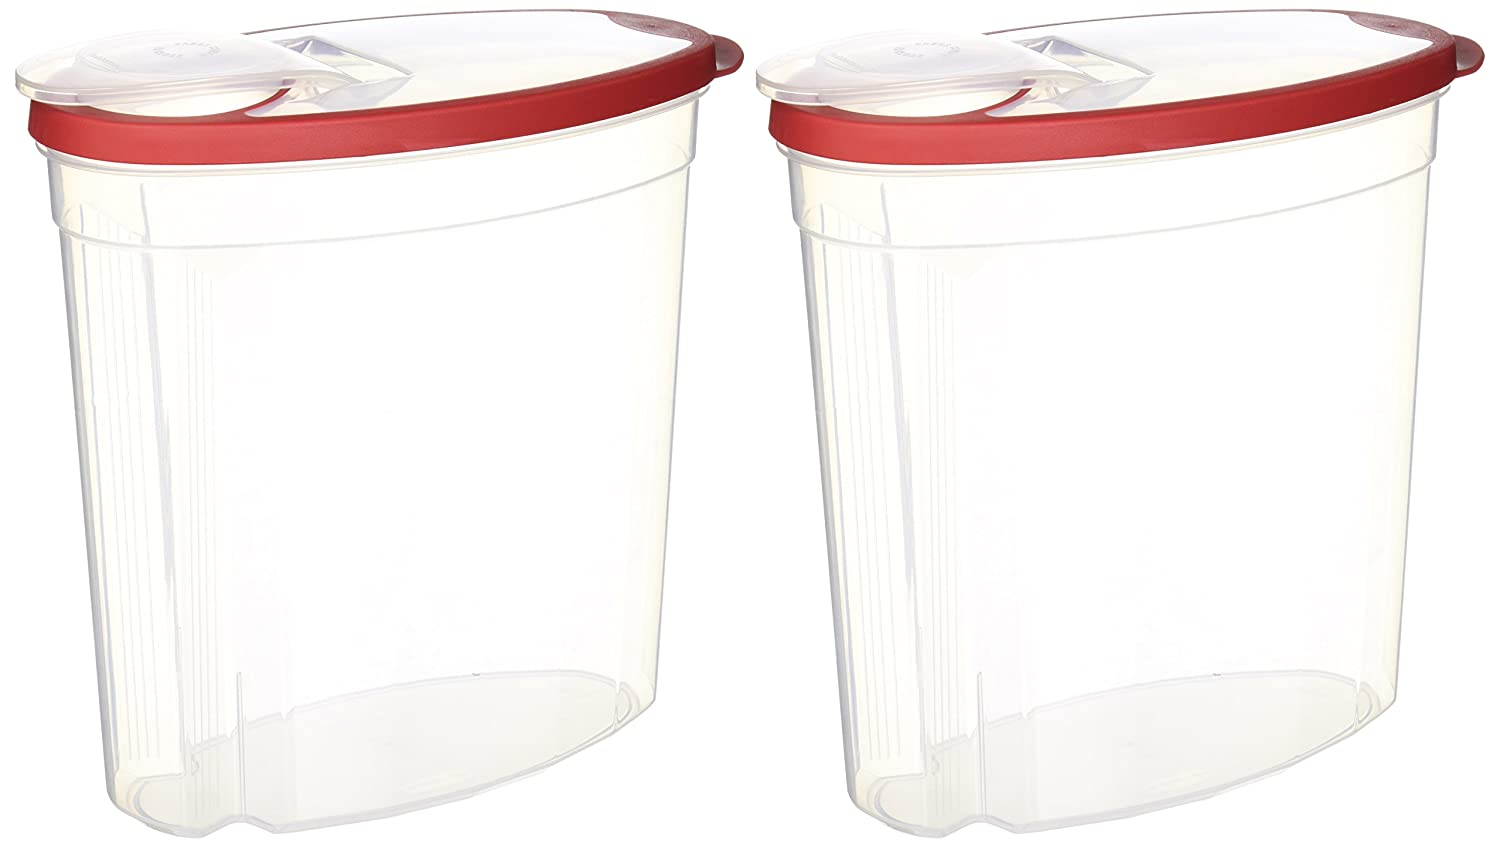 Rubbermaid SYNCHKG076982 714270014505 Cereal/Snack Storage, 1.5 Gal (Pack of 2 Containers), 1.5 Gallon, Red